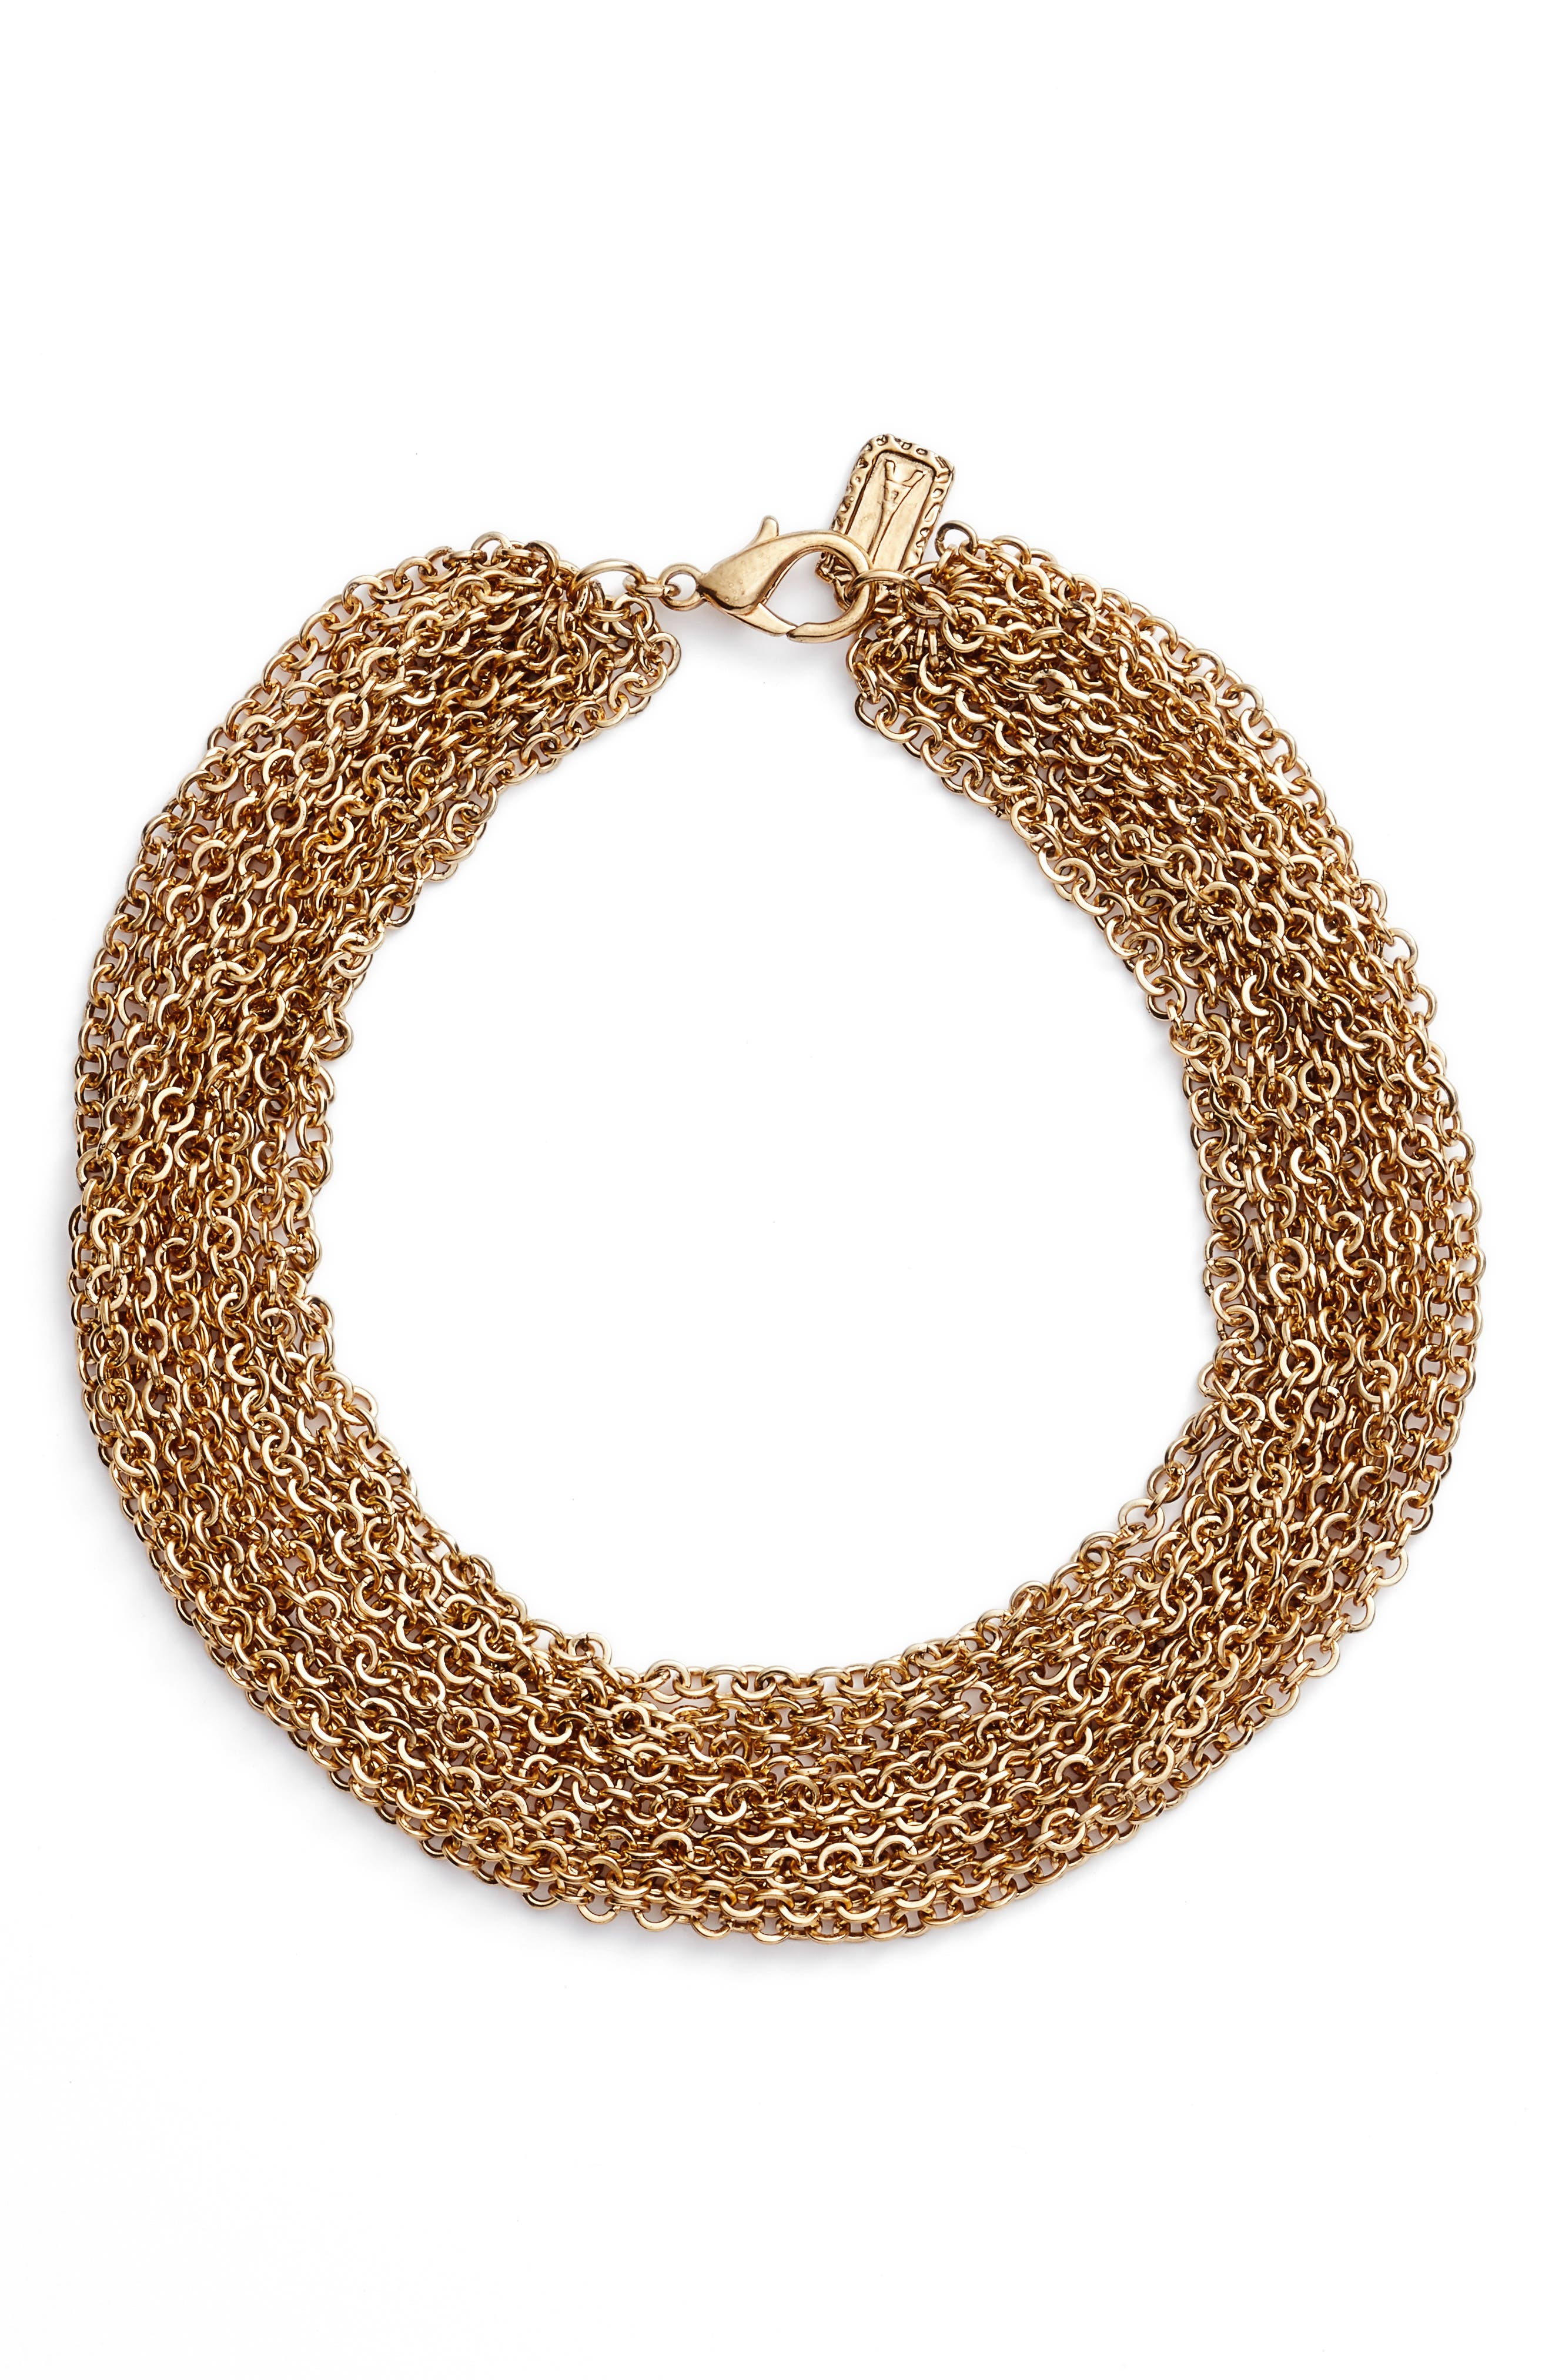 Adeline Collar Necklace,                         Main,                         color, Gold